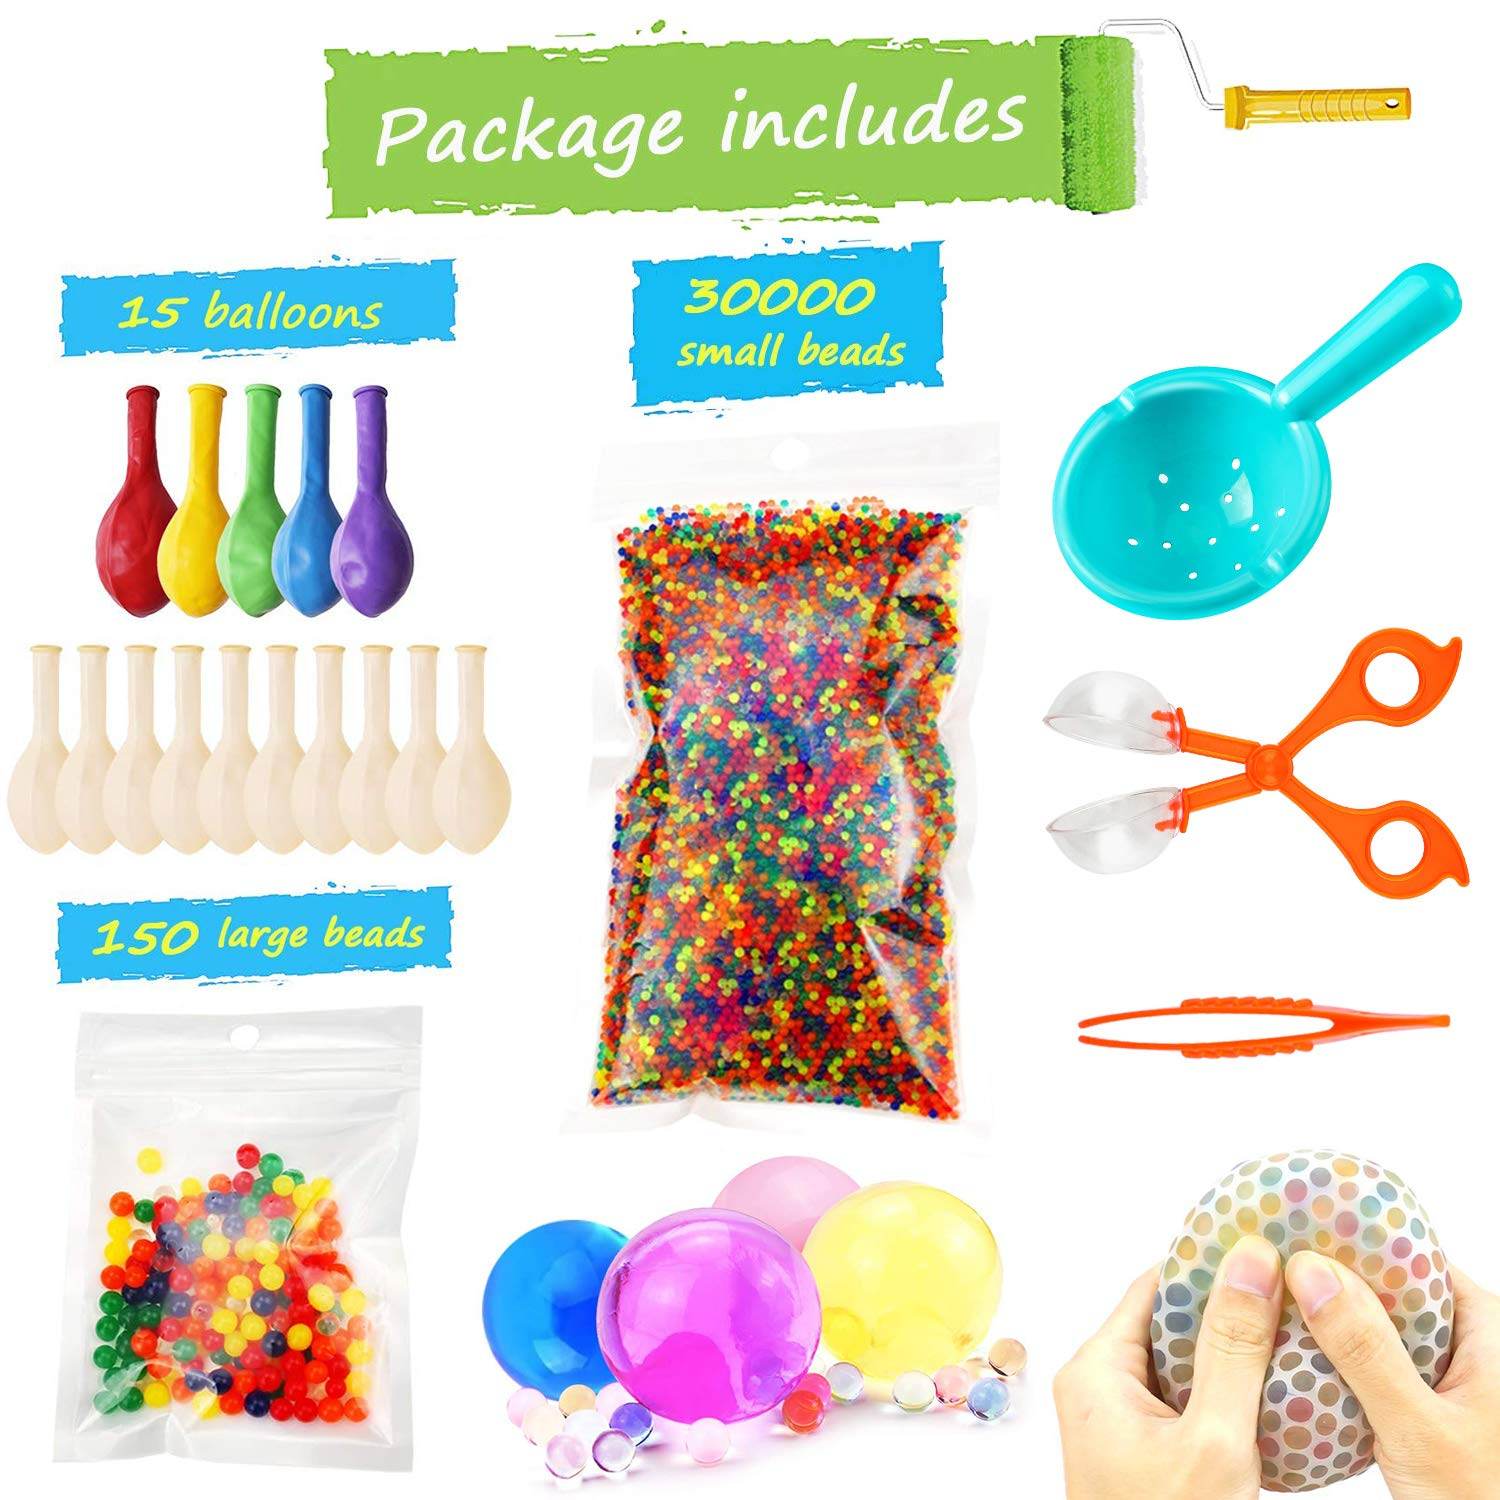 Water Beads Pack (30000 Small Water Beads /150 Large Jumbo Water beads/15 Balloons) Mixed Jelly Beads Water Gel Balls,Sensory Toys and Decoration by UWANTME